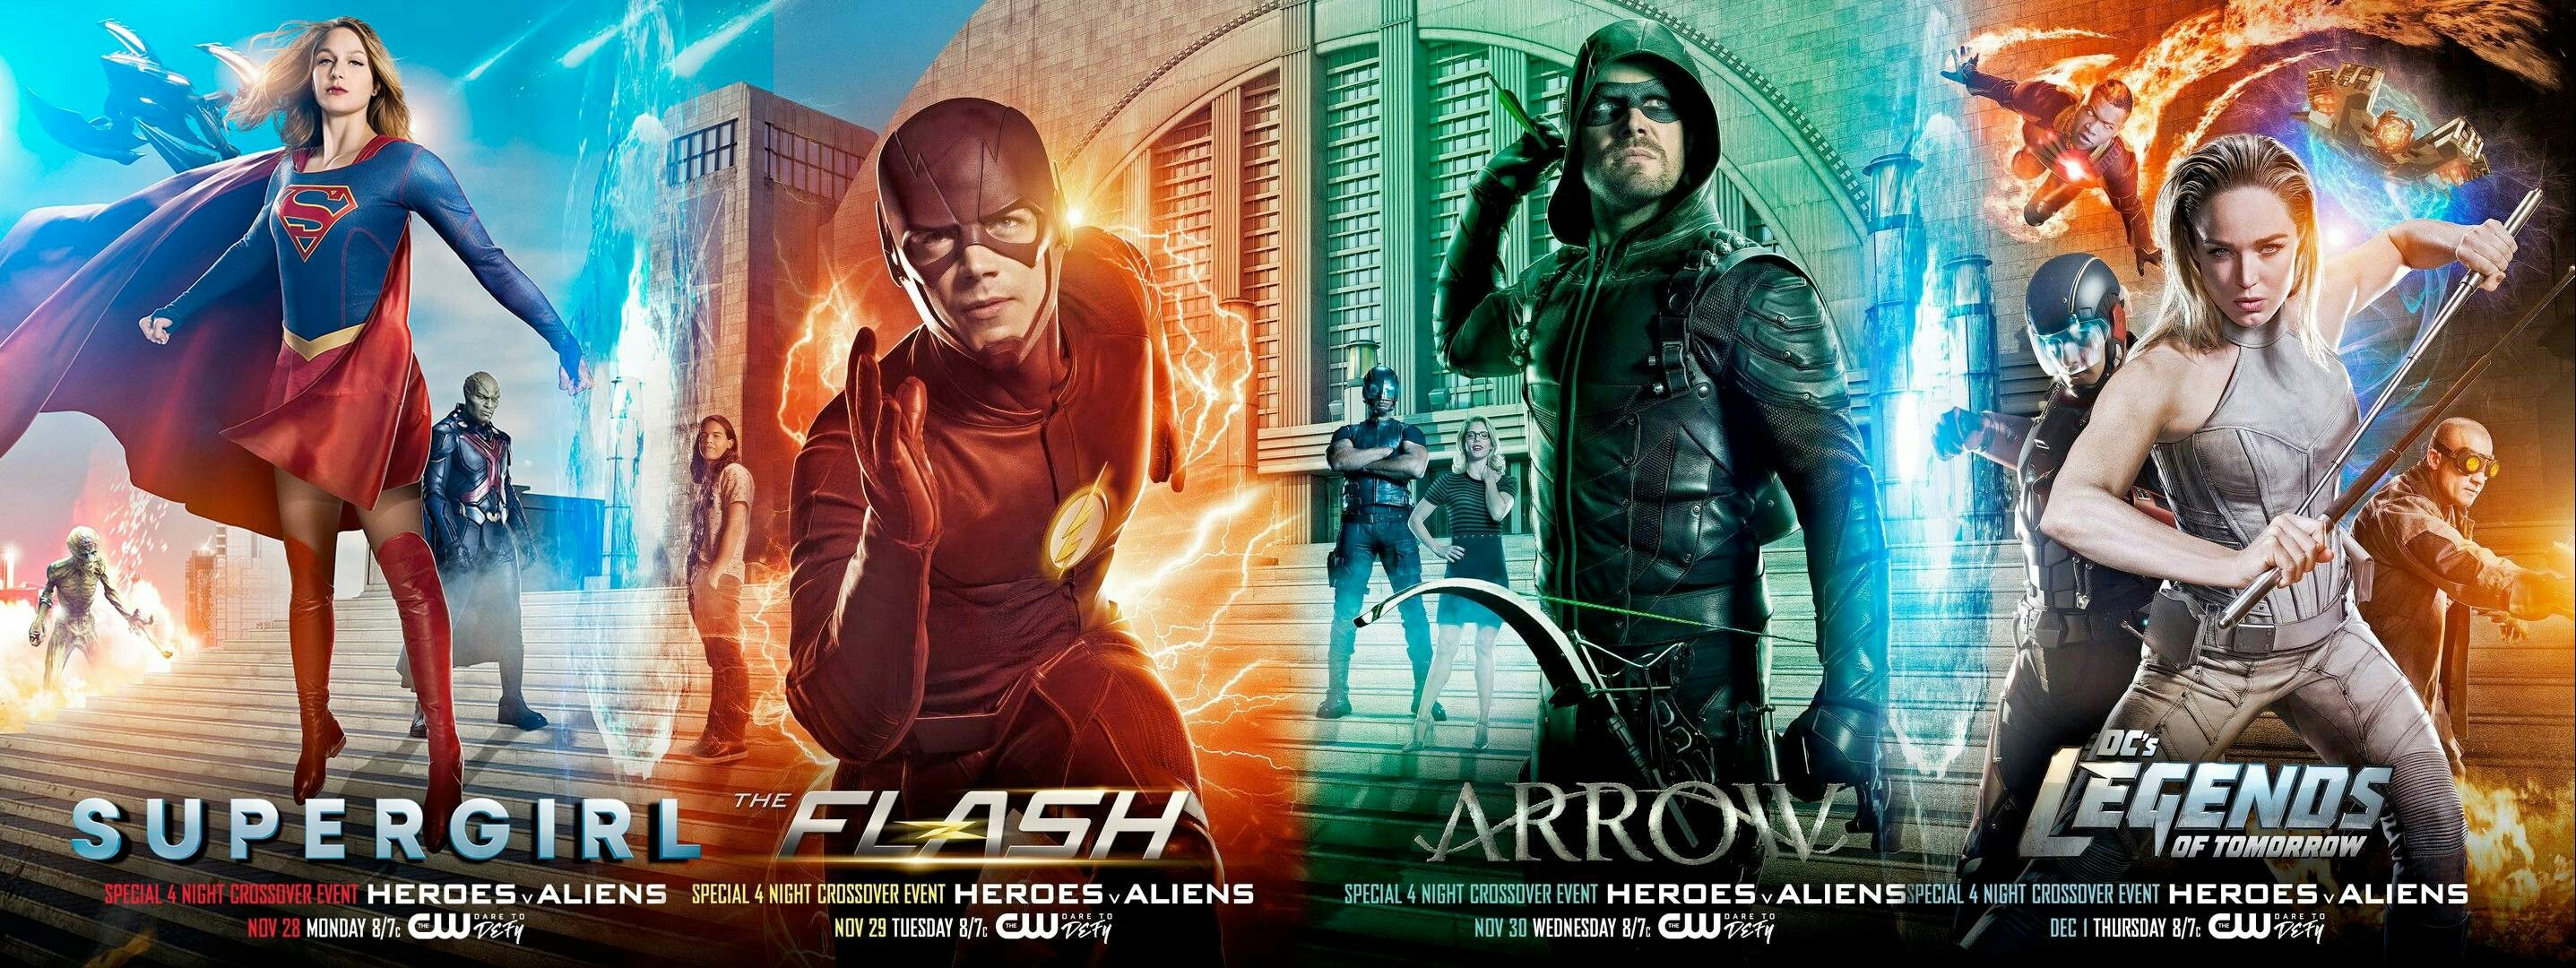 Pin On Arrow The Flash Legends Of Tomorrow Supergirl